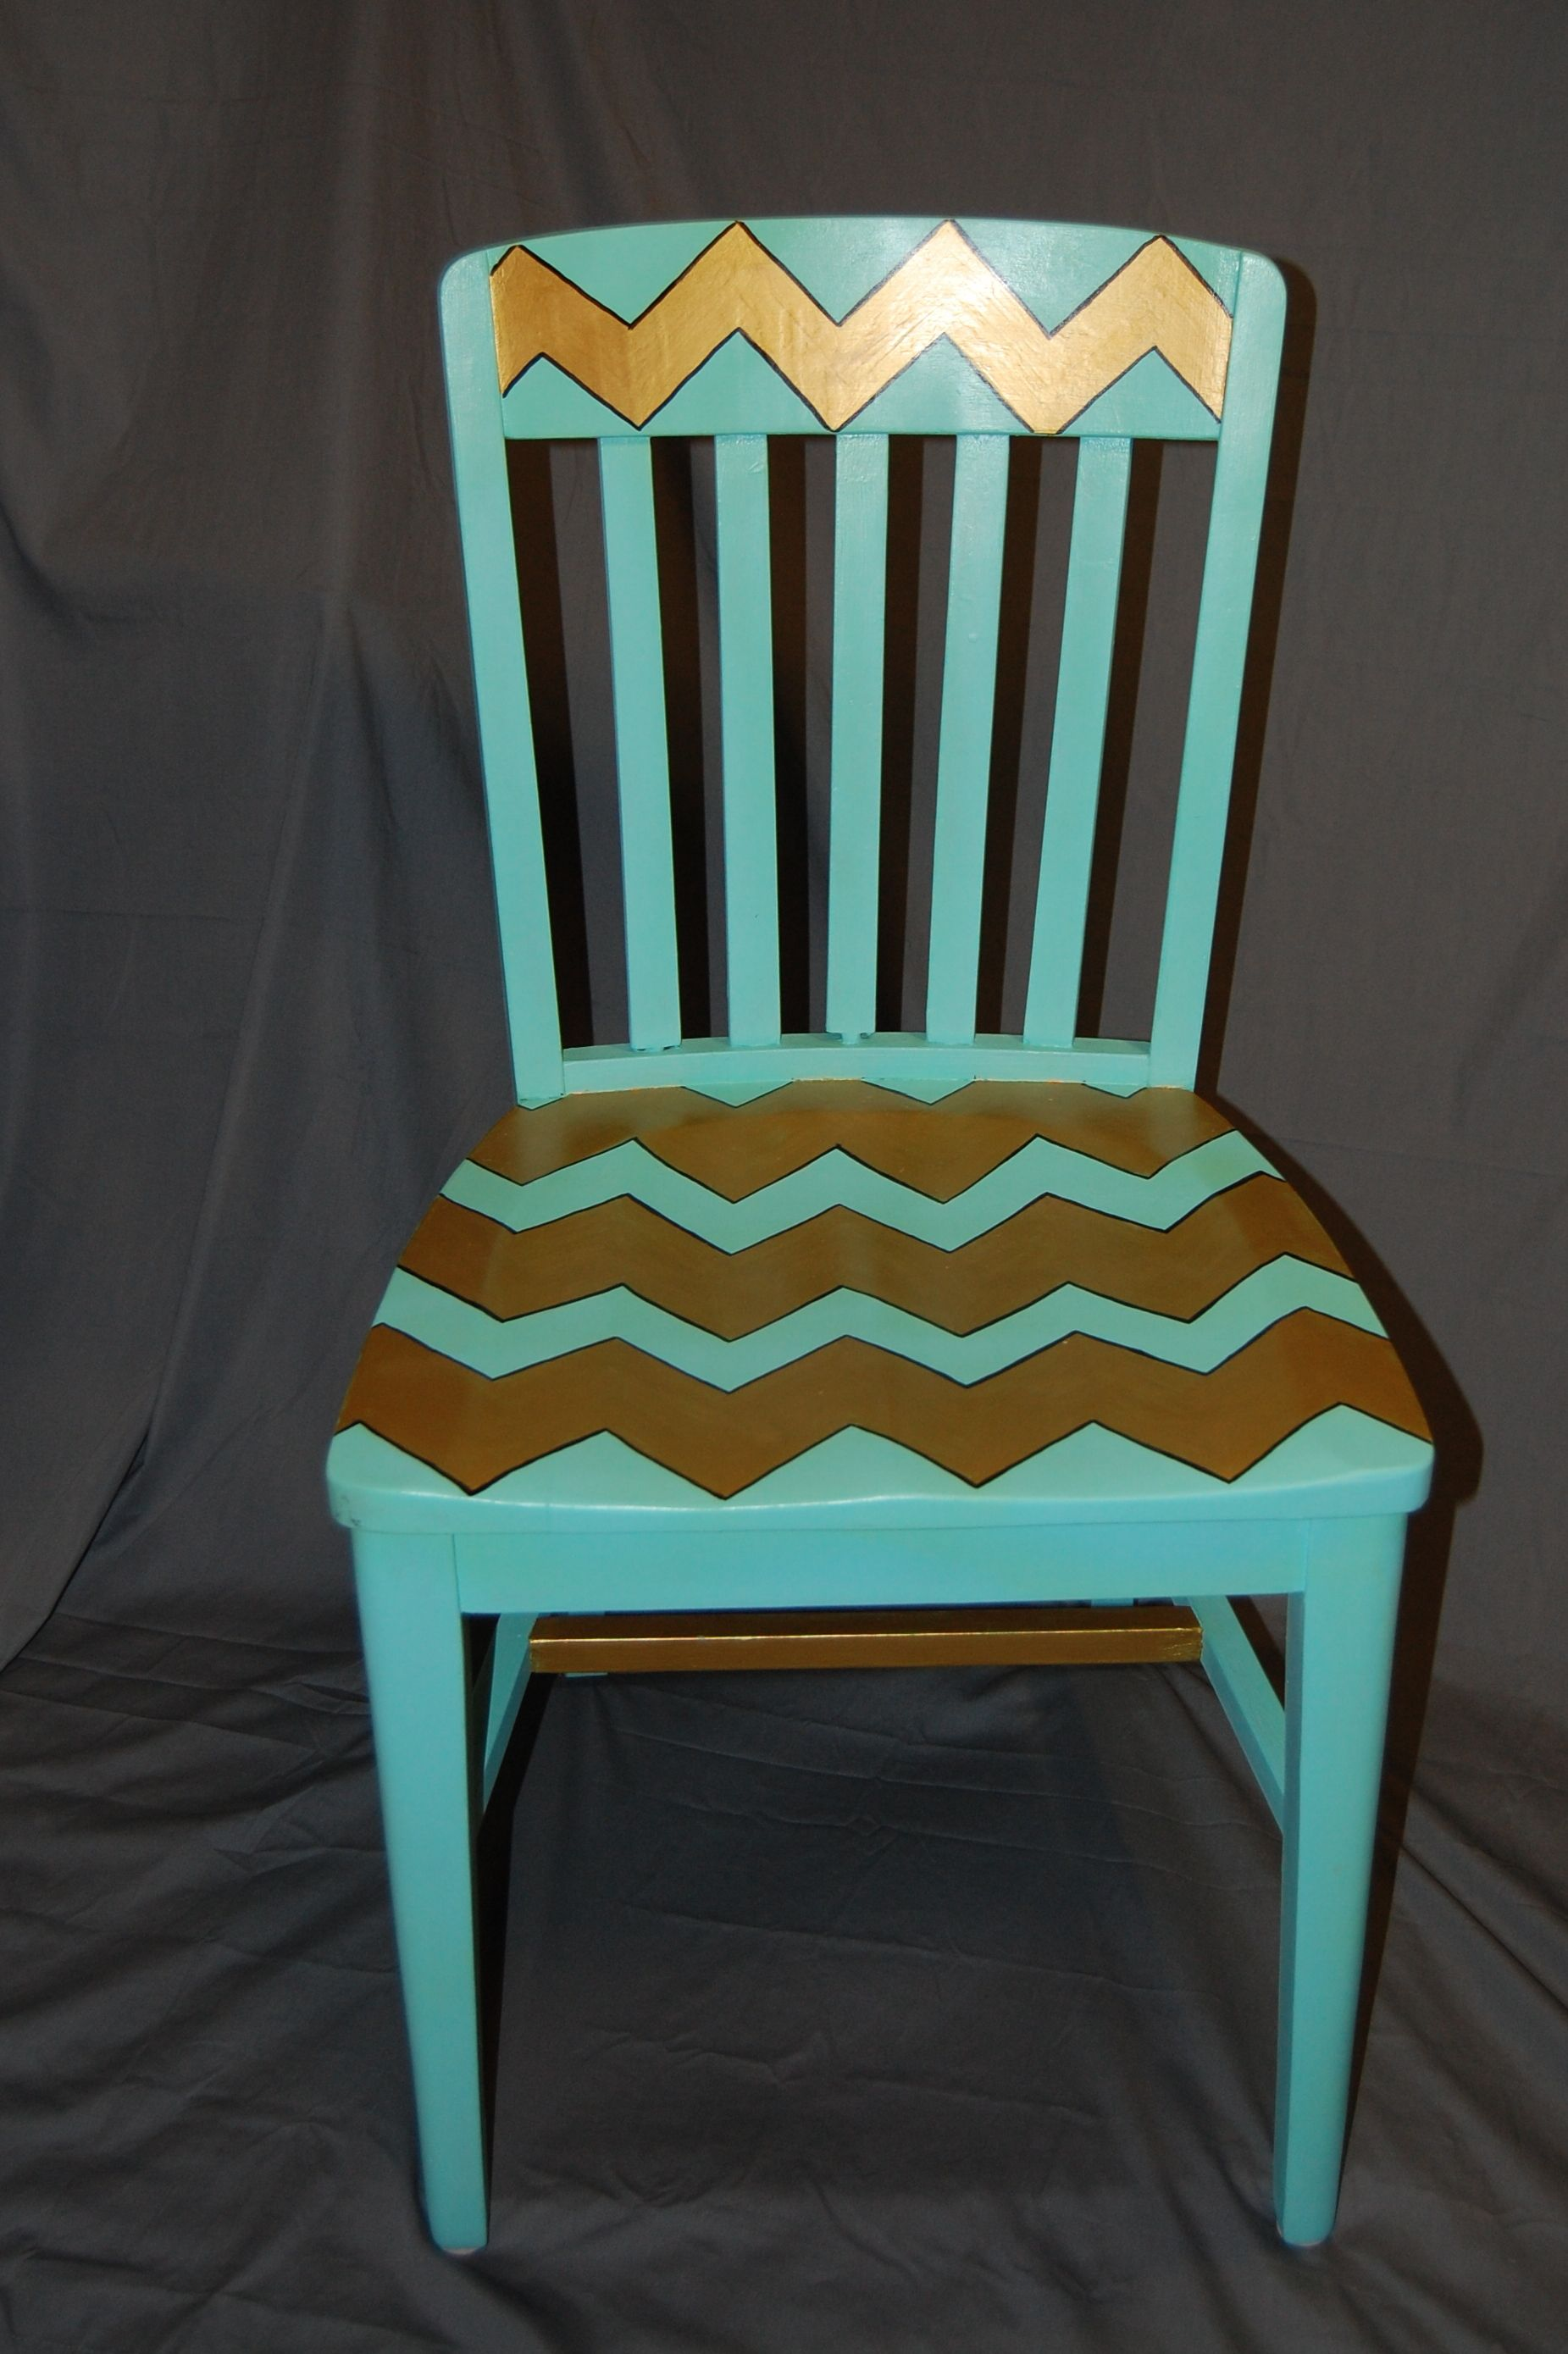 Nifty Thrifty - Mint & Gold Chevron Chair